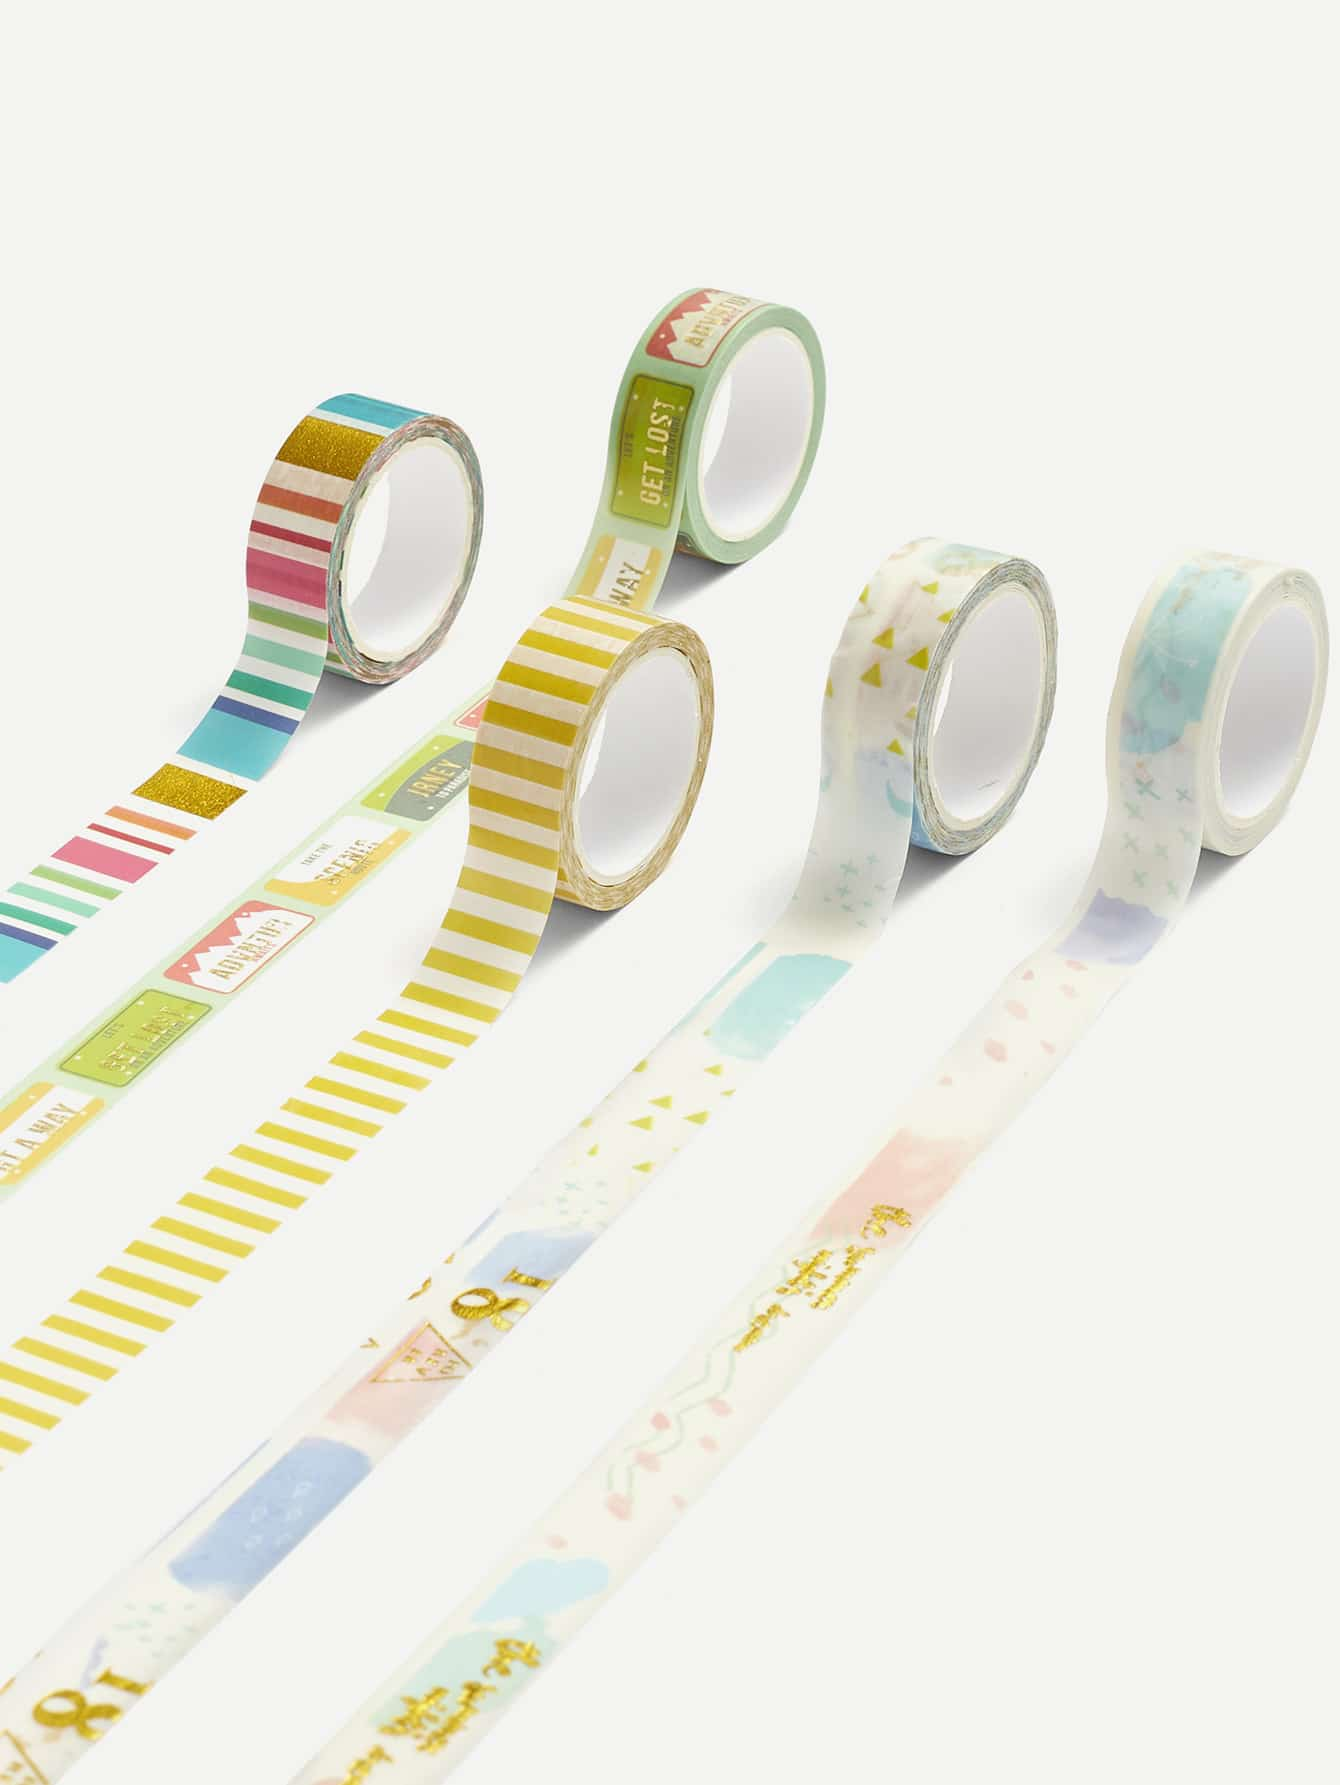 Stripe & Cartoon Print Masking Tape 5 Pcs 1 5 3cm 5 7m classical style washi tape diy decoration scrapbooking planner masking tape adhesive tape label sticker stationery